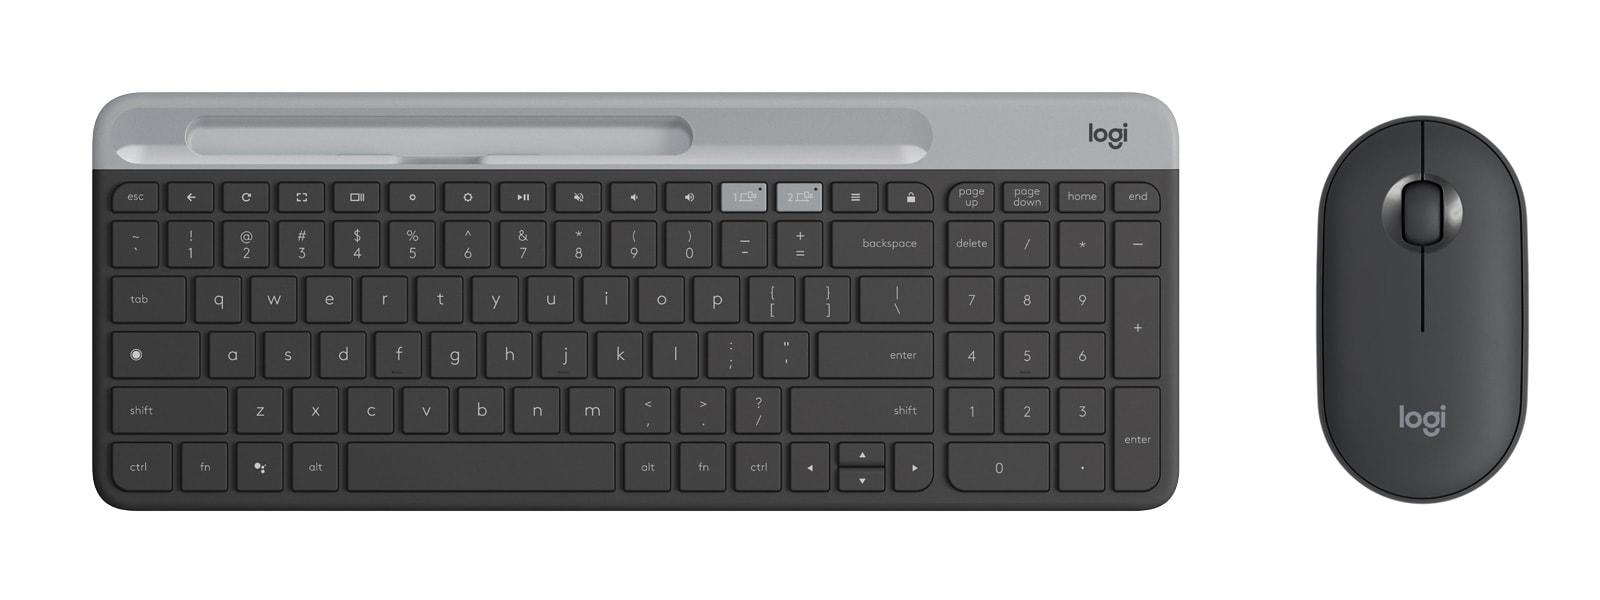 Logitech Unveils Its First Mouse And Keyboard Built For Chrome Os Updated Engadget